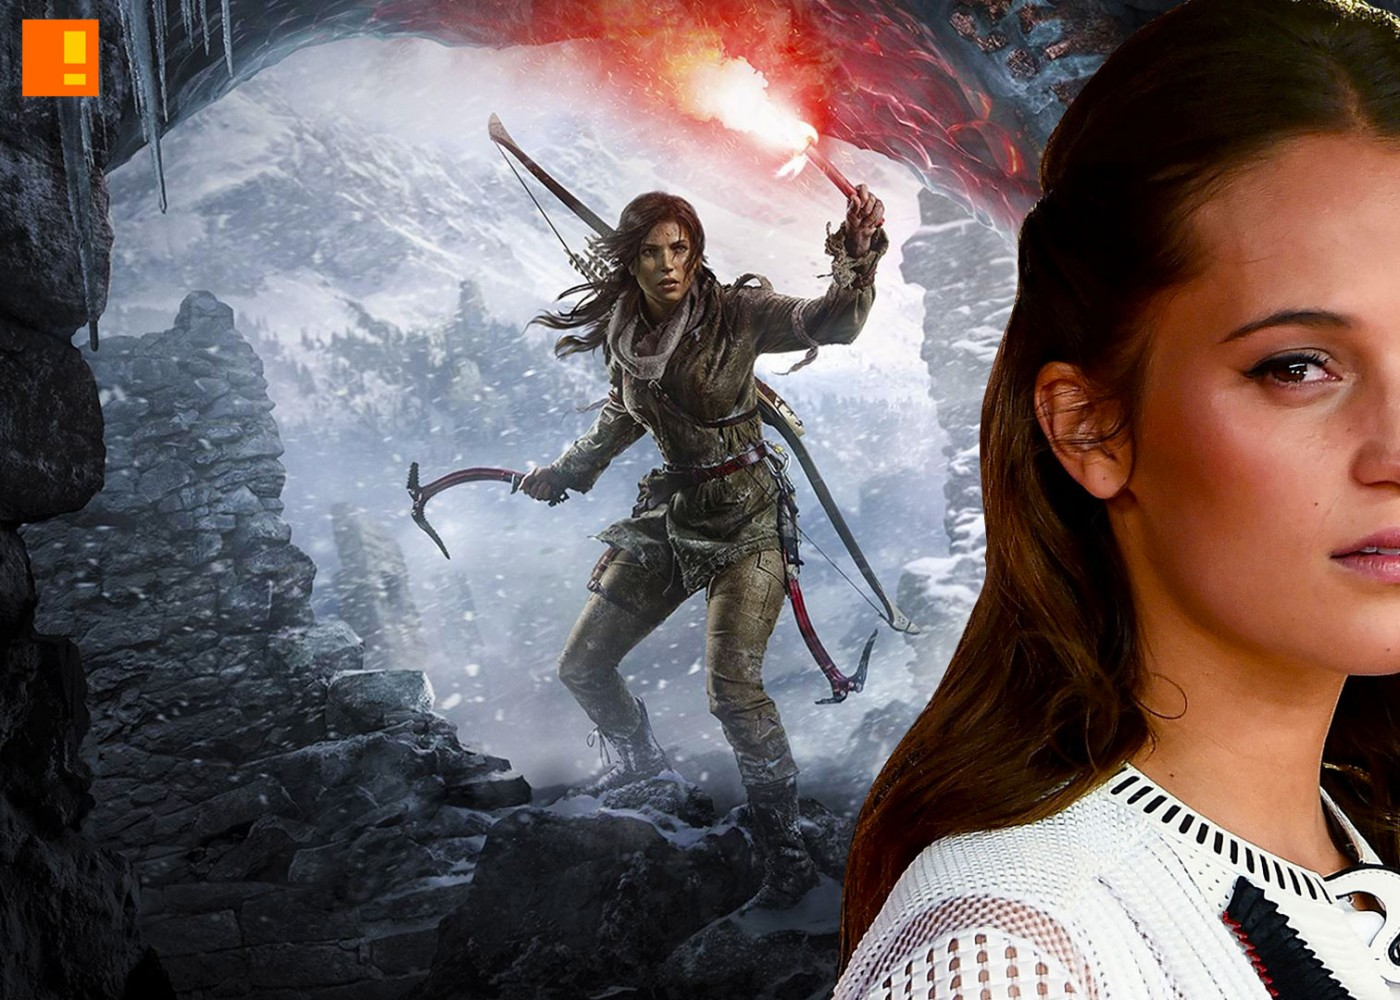 Alicia Vikander, lara croft, tomb raider, casting, reboot, entertainment on tap, game movies, ex-machinima,jason bourne